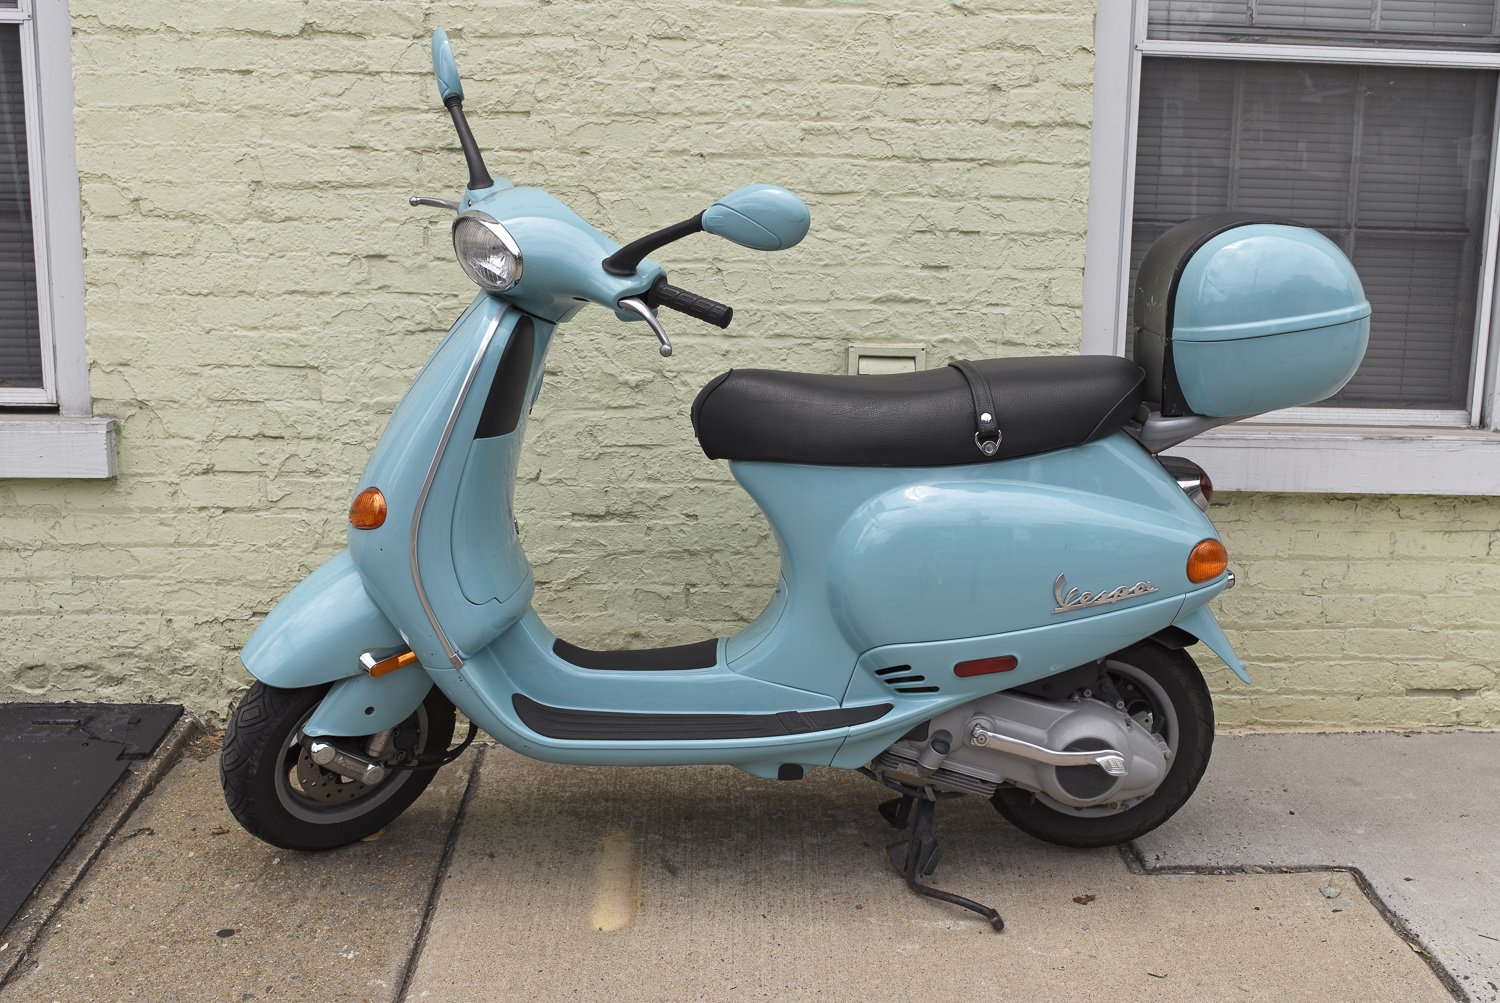 Blue Scooter - Alexandria, Virginia, 2011